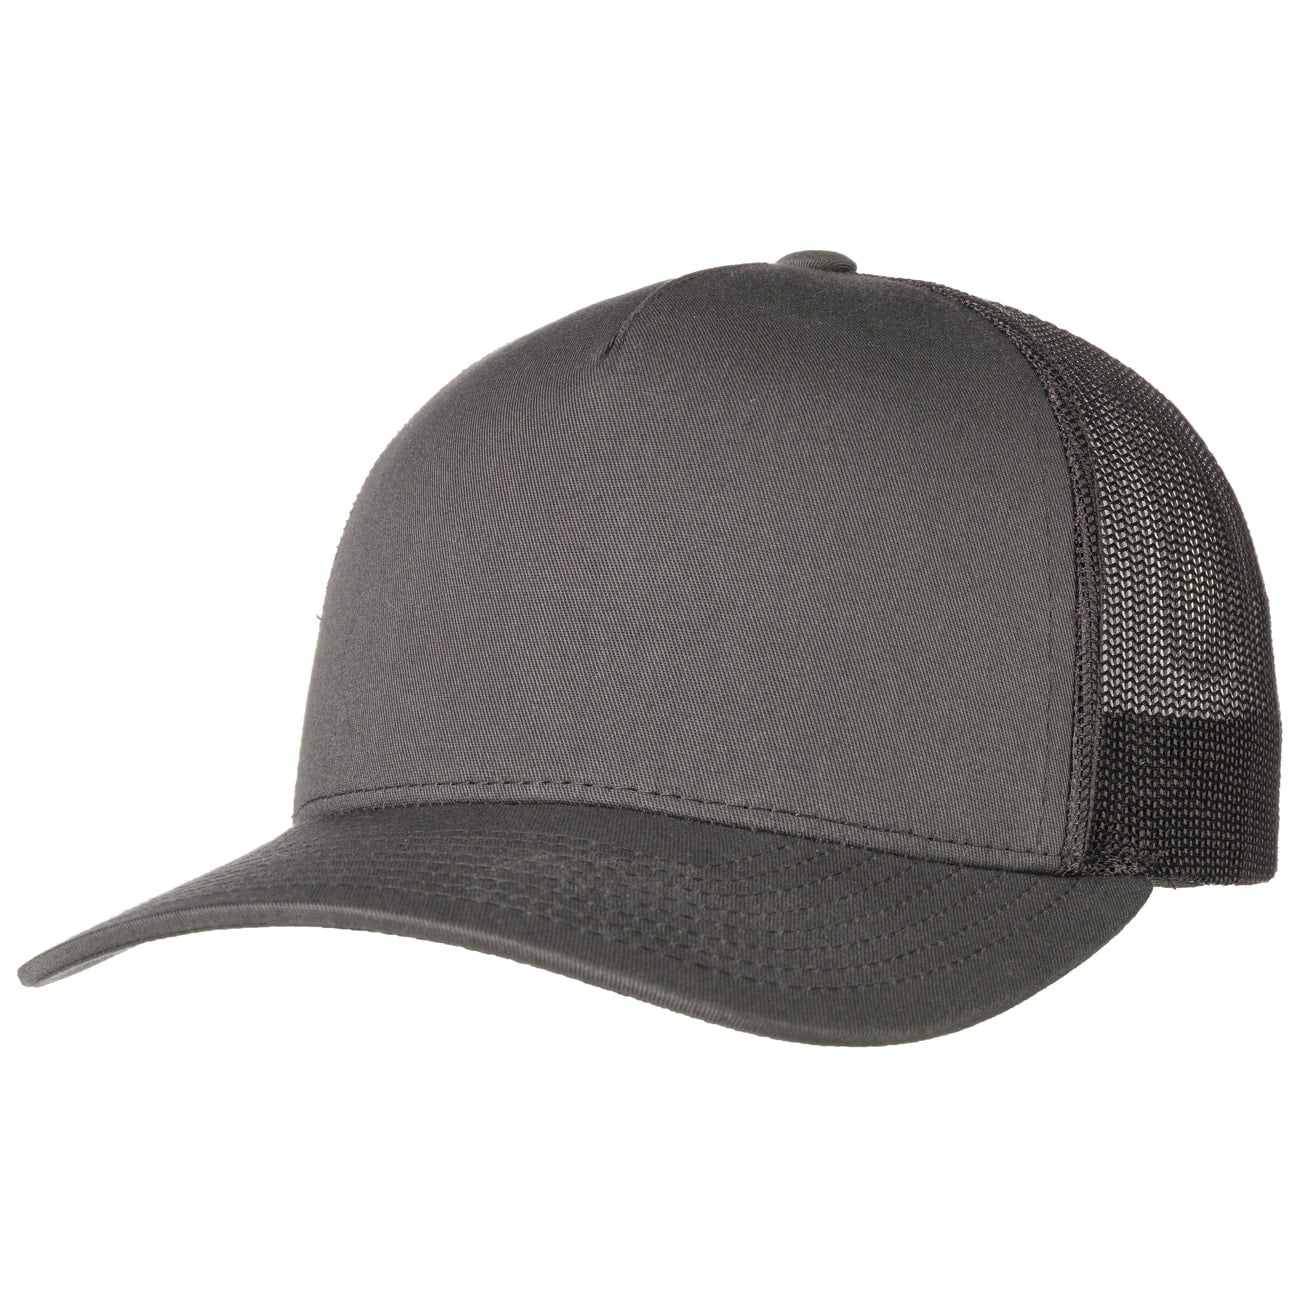 Gorra Trucker 5 Panel Retro